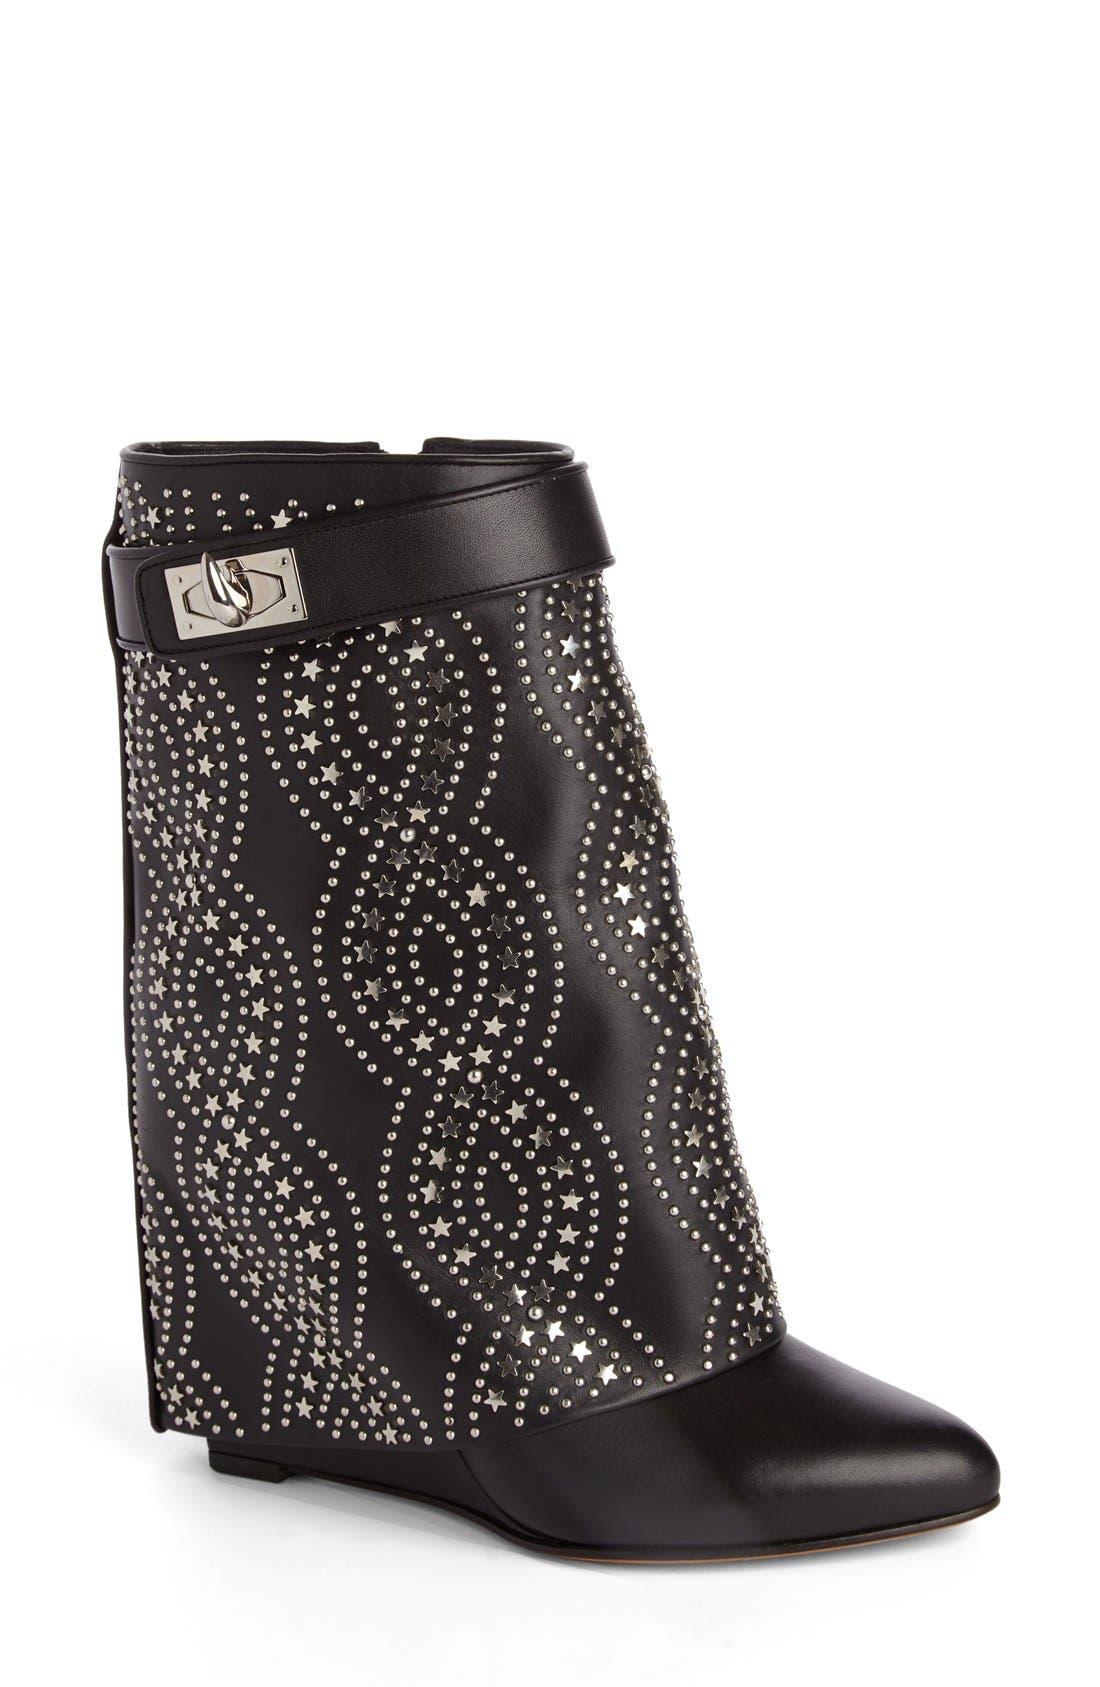 Main Image - Givenchy Studded Shark Tooth Pant Leg Bootie (Women)